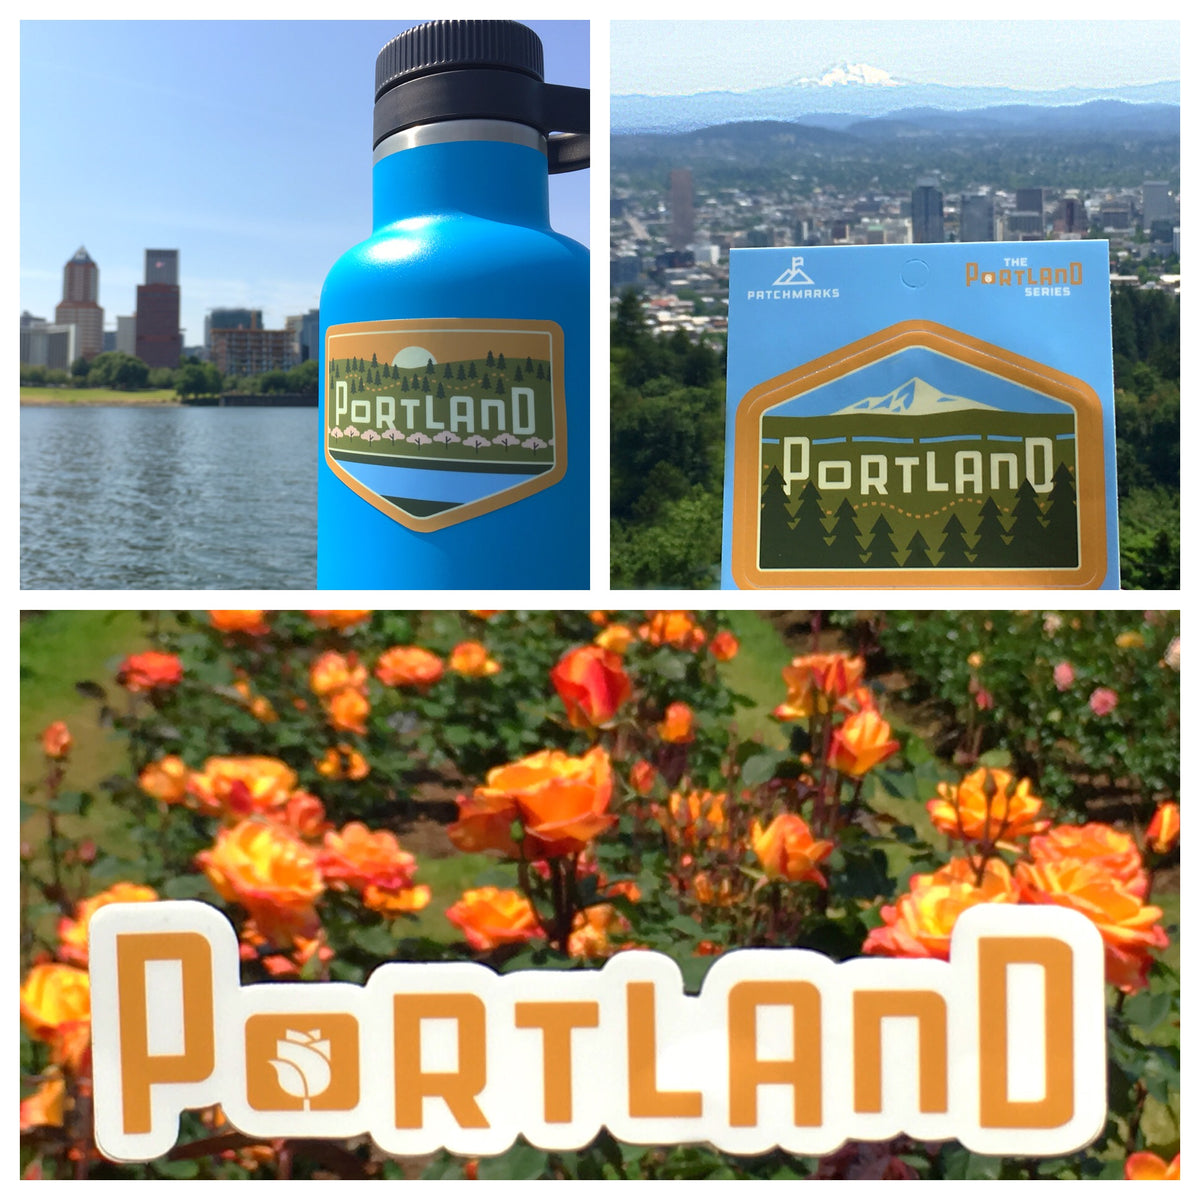 The Portland Series